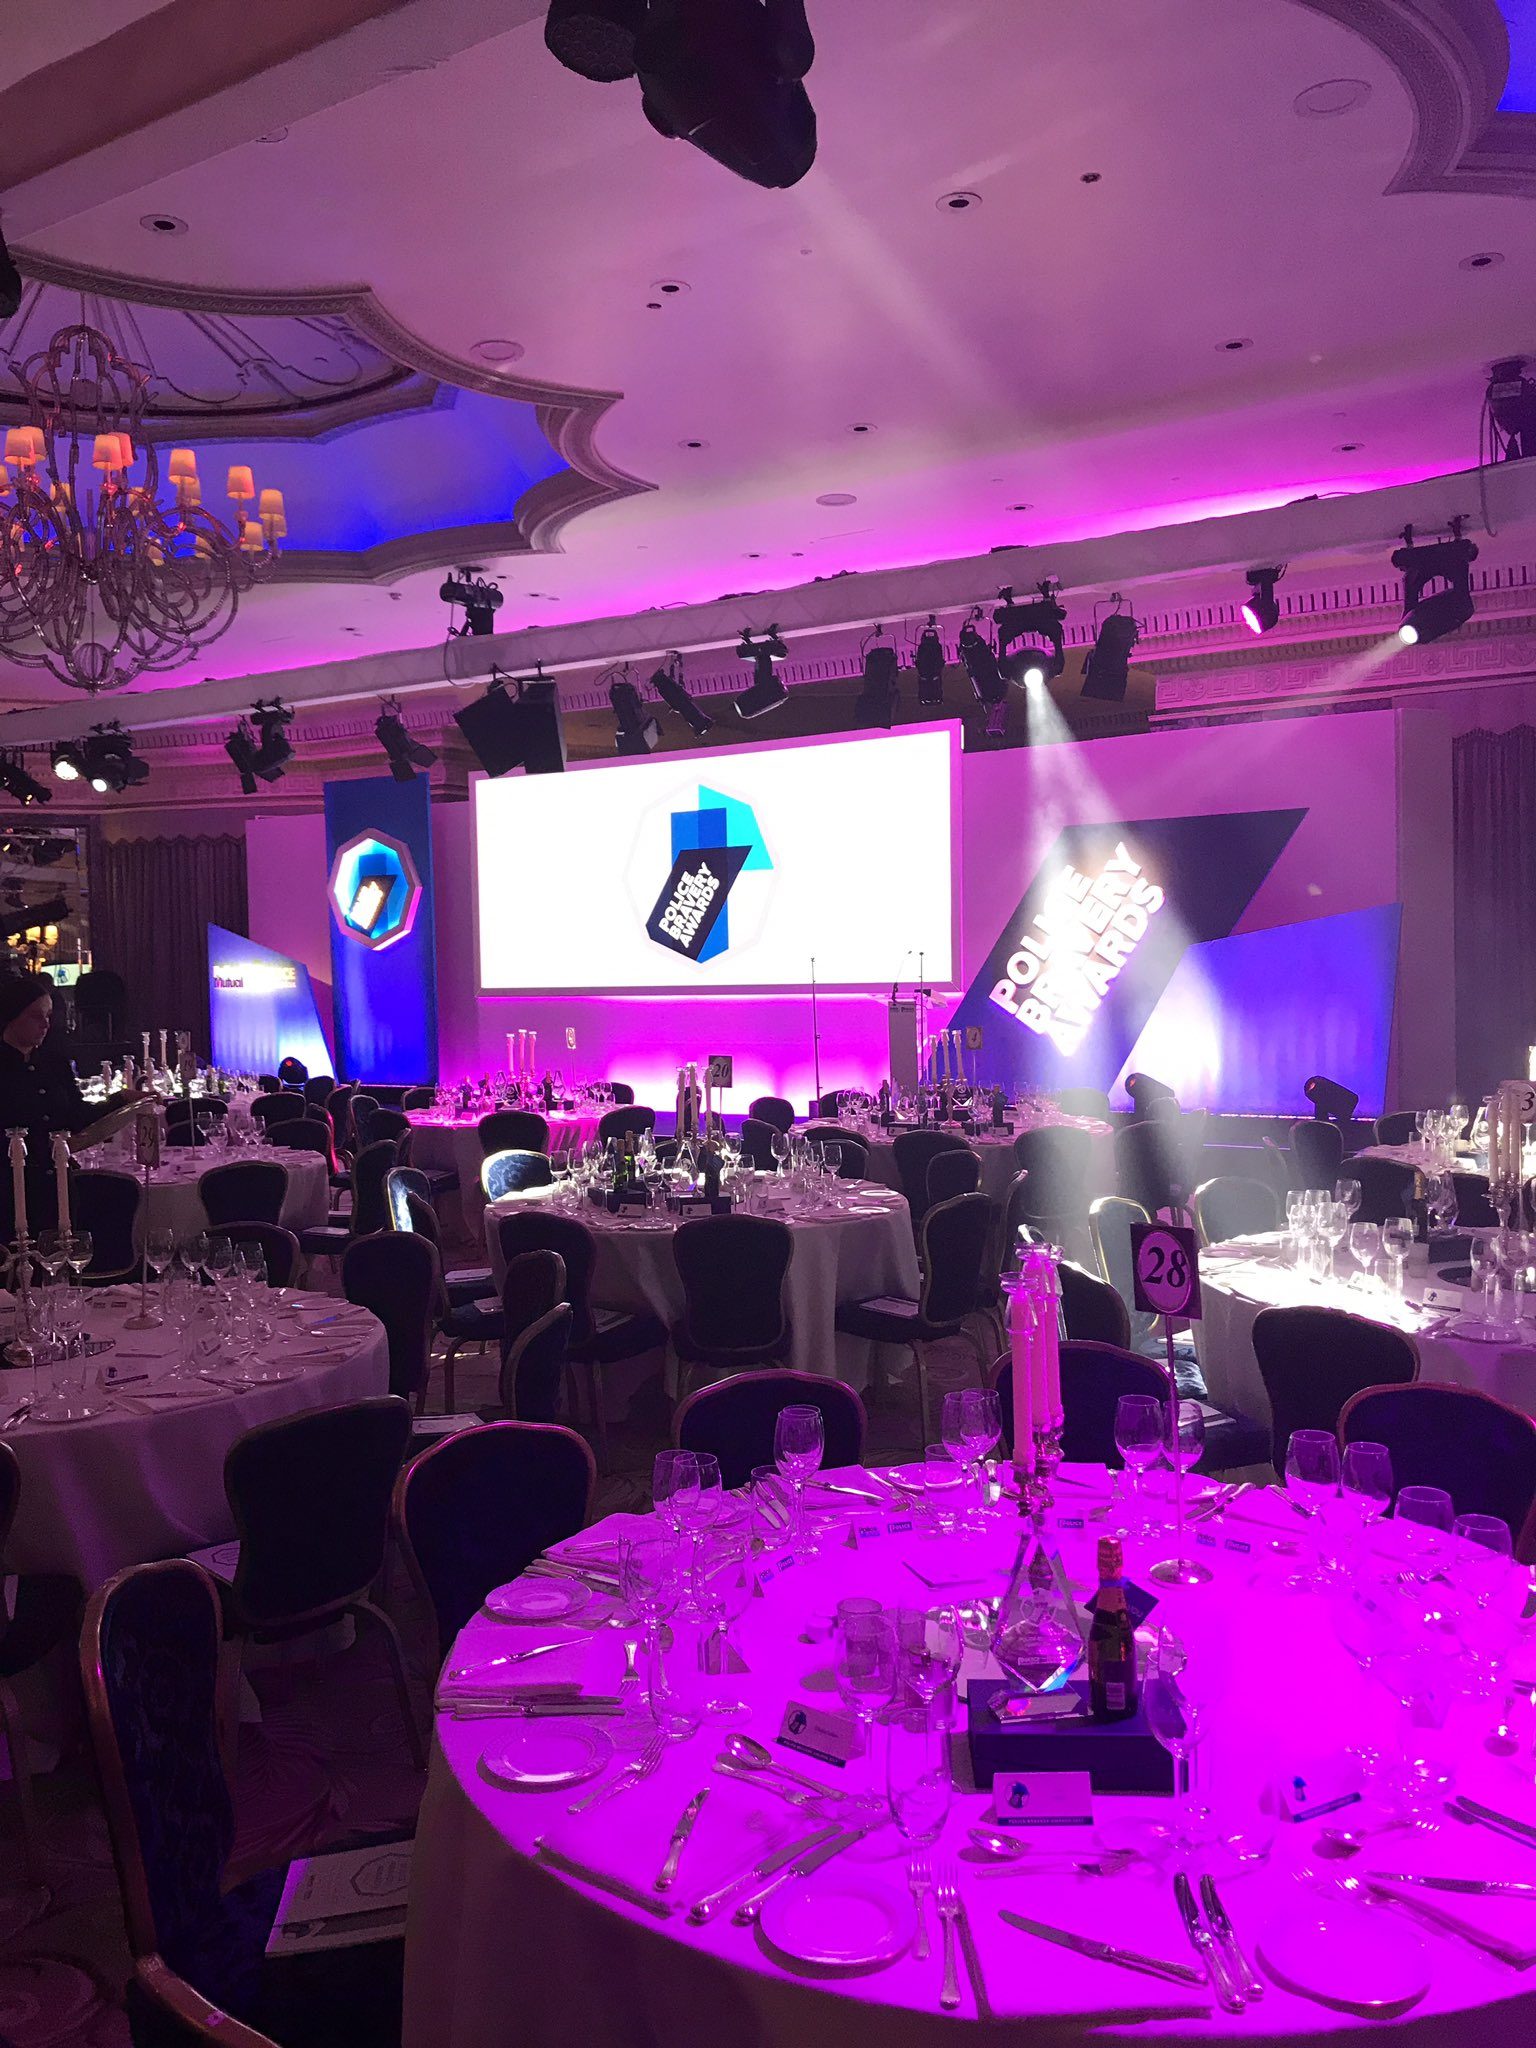 All ready for a wonderful evening, good luck to all the nominees #PoliceBravery https://t.co/qs3GGQRyGG